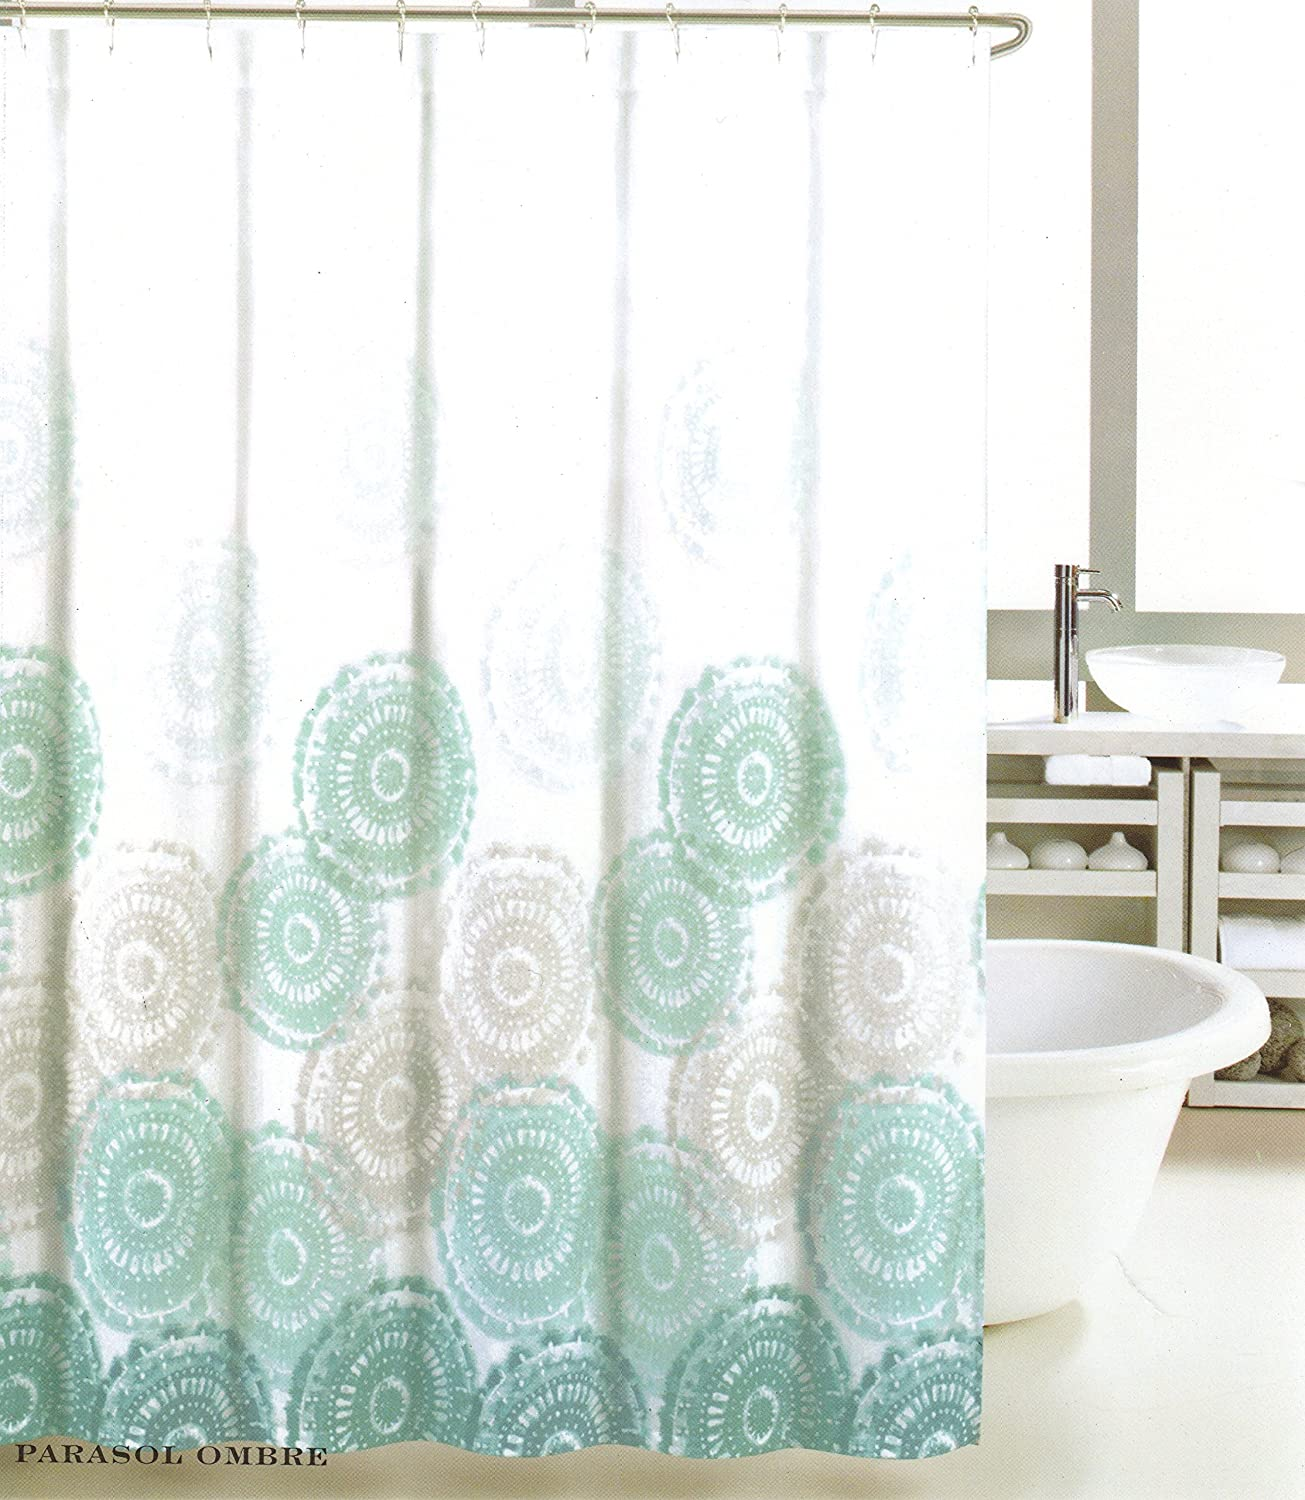 Cynthia rowley medallion shower curtain - Amazon Com Max Studio Home Cotton Shower Curtain Sea Medallion Grey Teal Turquoise And White Ombre 72 Inch By 72 Inch Home Kitchen